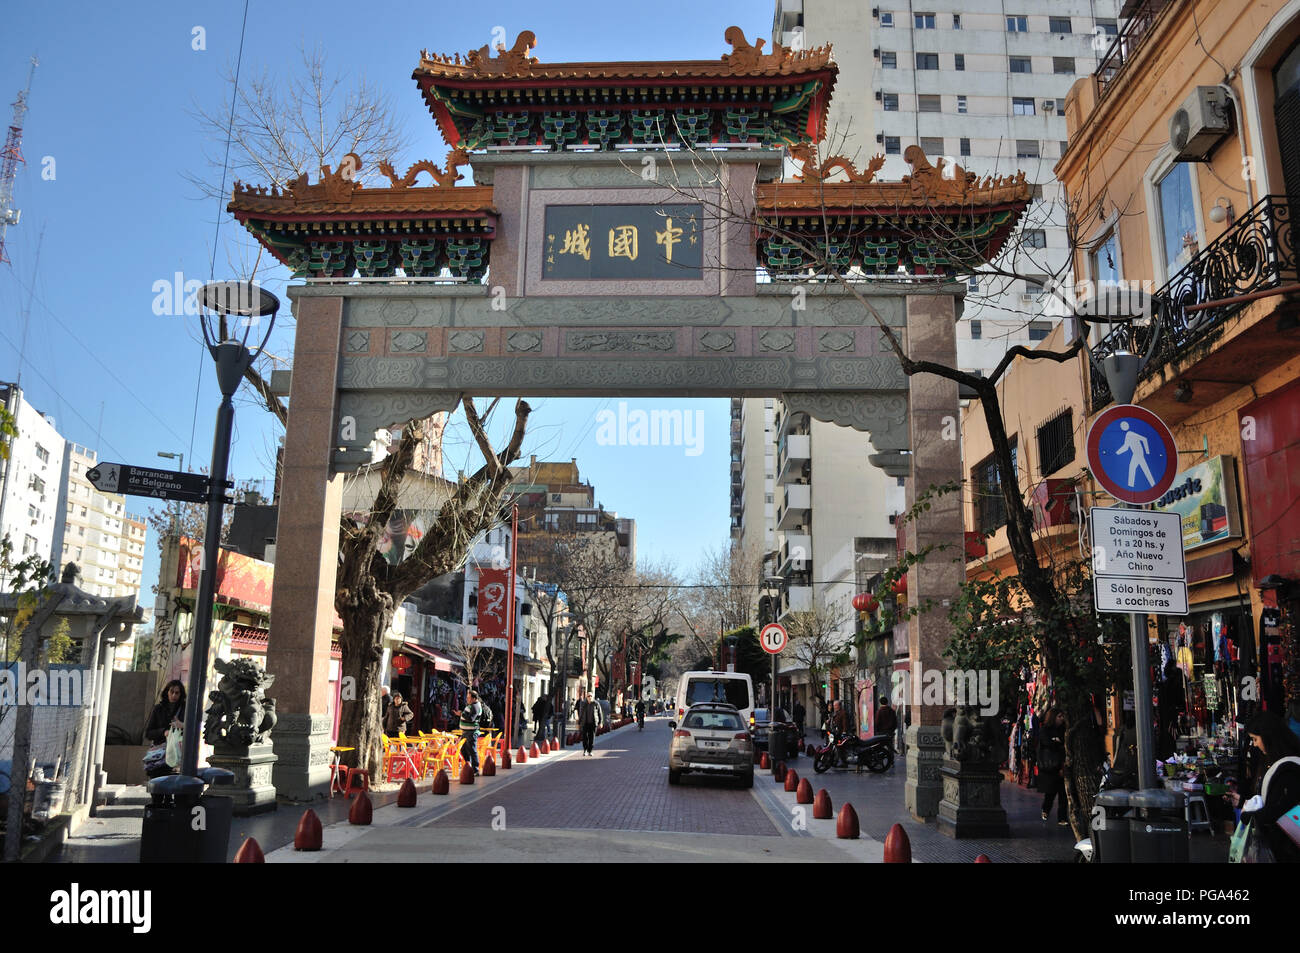 """BUENOS AIRES - JULY 7, 2016: chinese arch at Chinatown on July 7, 2016, at Belgrano neighborhood, Buenos Aires. The arch with the inscription """"Chinato Stock Photo"""